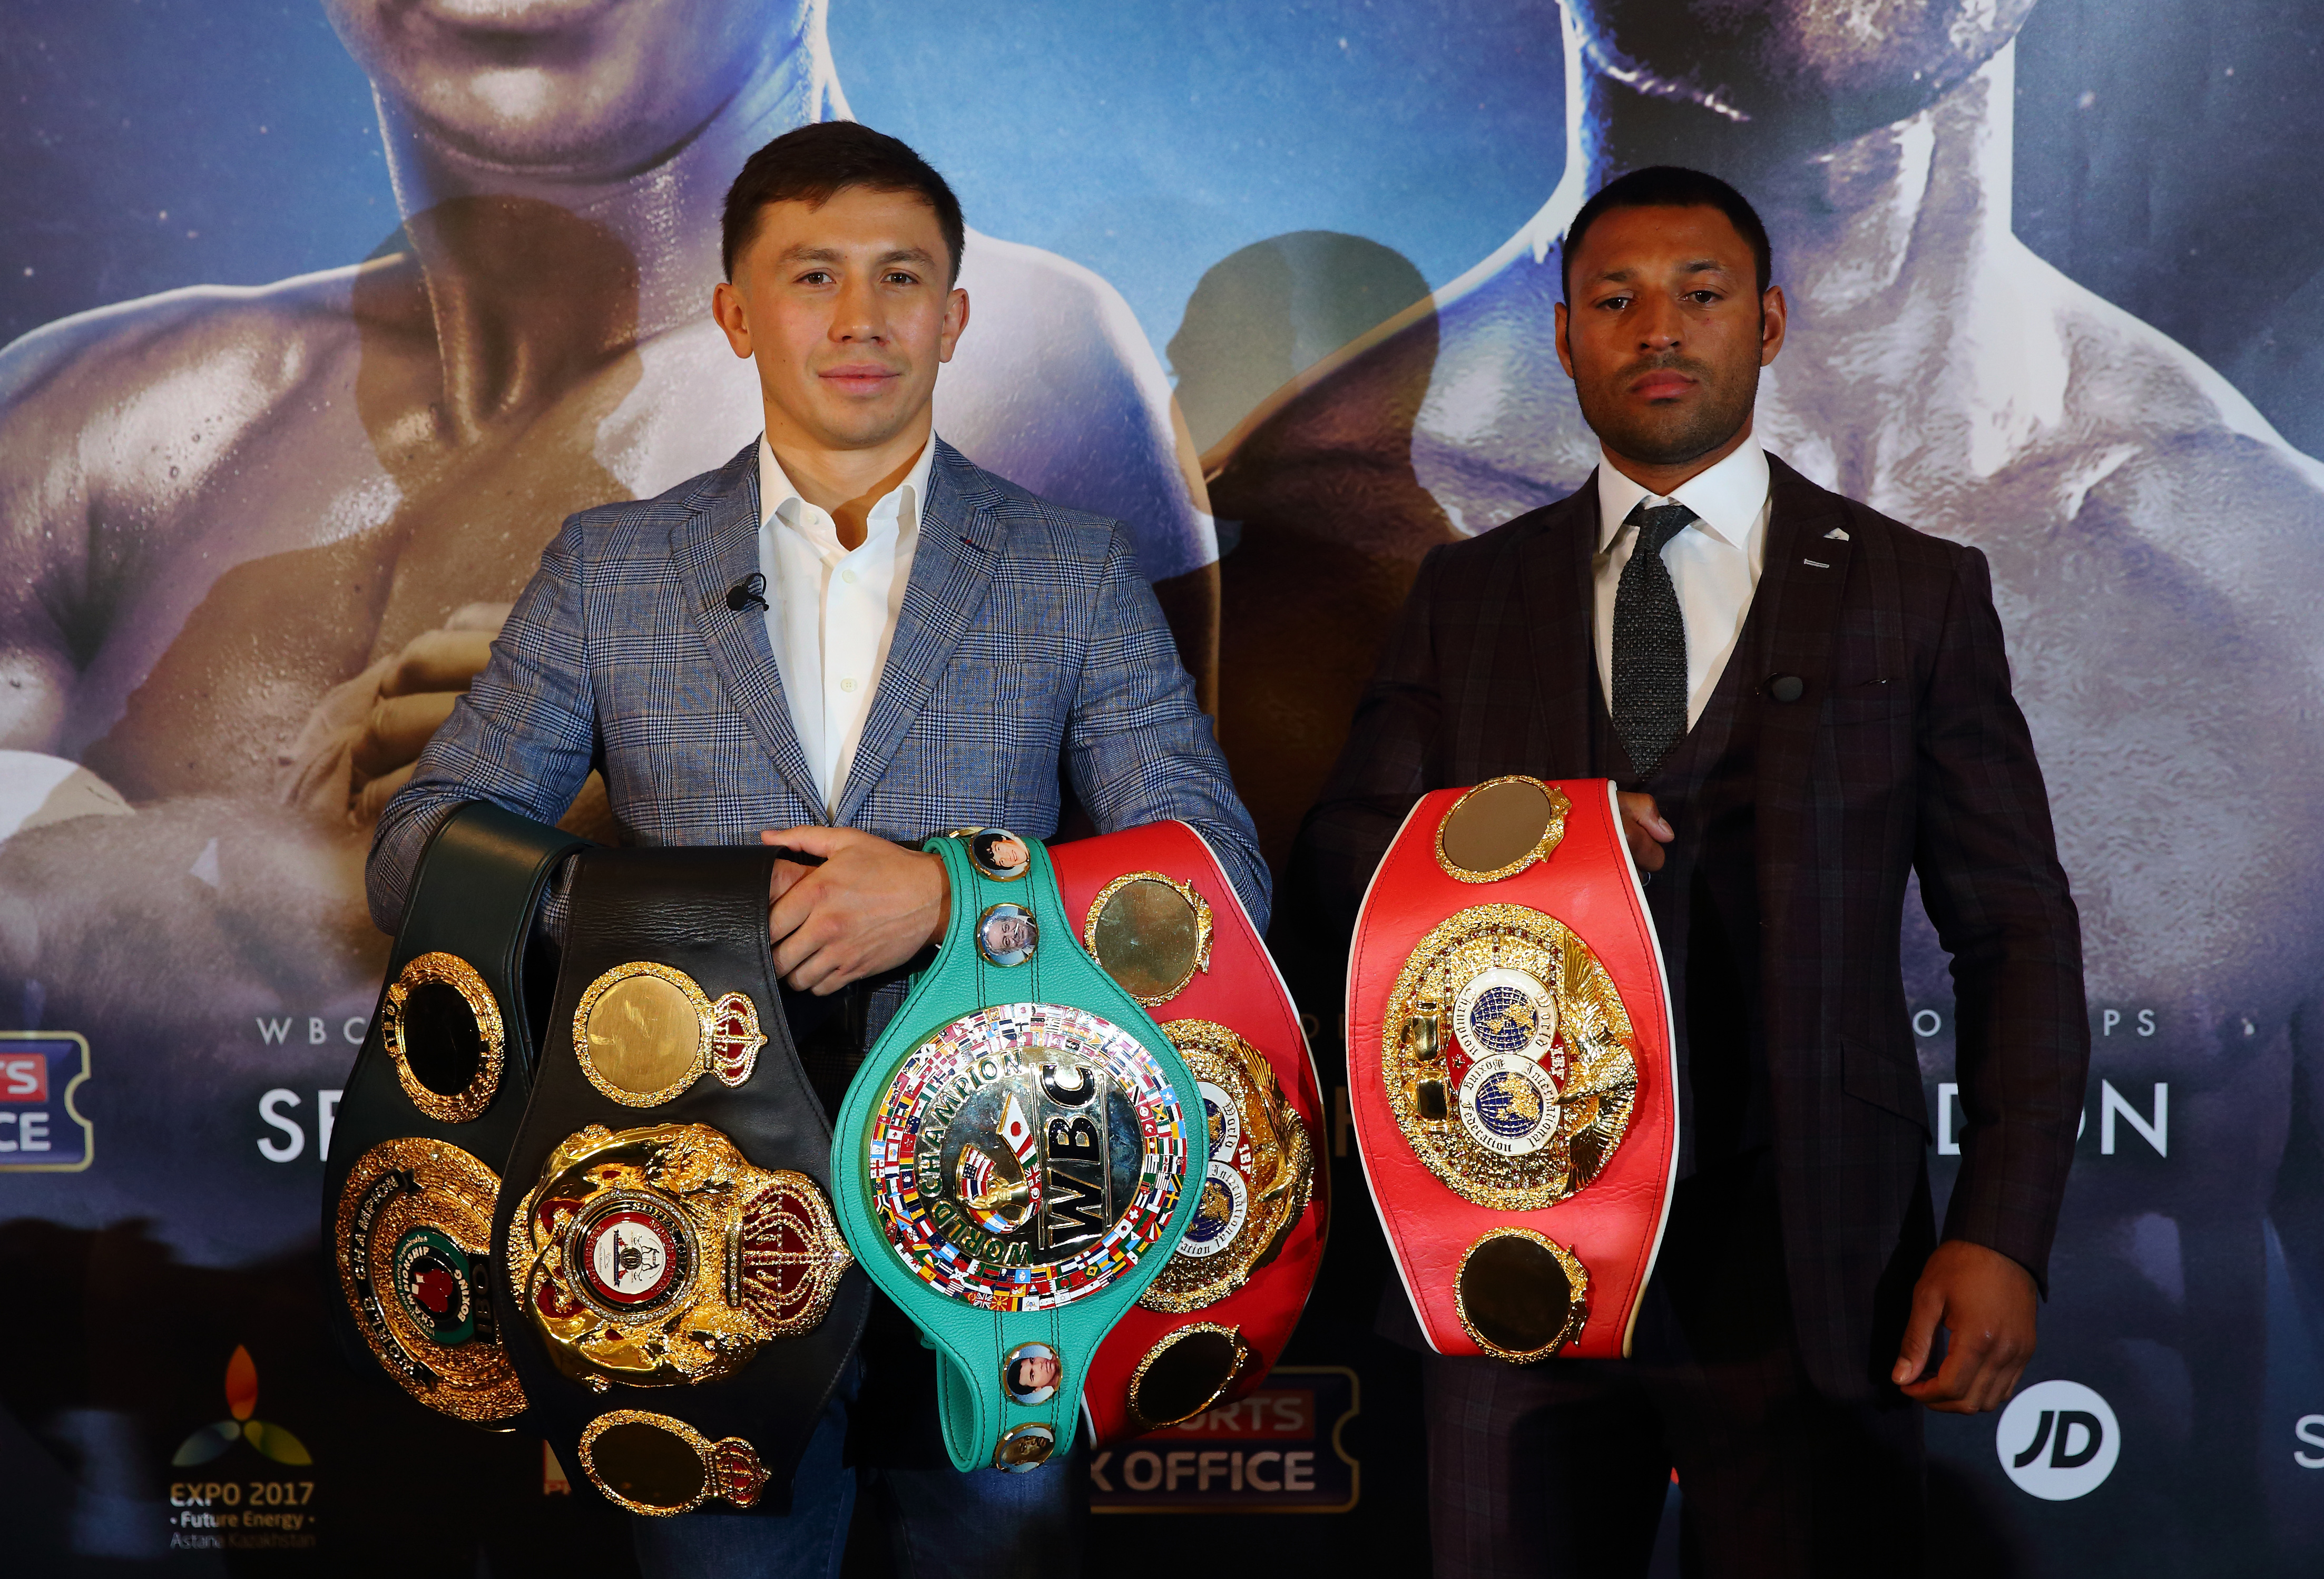 LONDON, ENGLAND - AUGUST 01: Gennady Golovkin (L) and Kell Brook (R) pose for a photo during the press conference ahead of the fight between Gennady Golovkin and Kell Brook at the Dorchester Hotel on August 1, 2016 in London, England. (Photo by Jordan Mansfield/Getty Images)